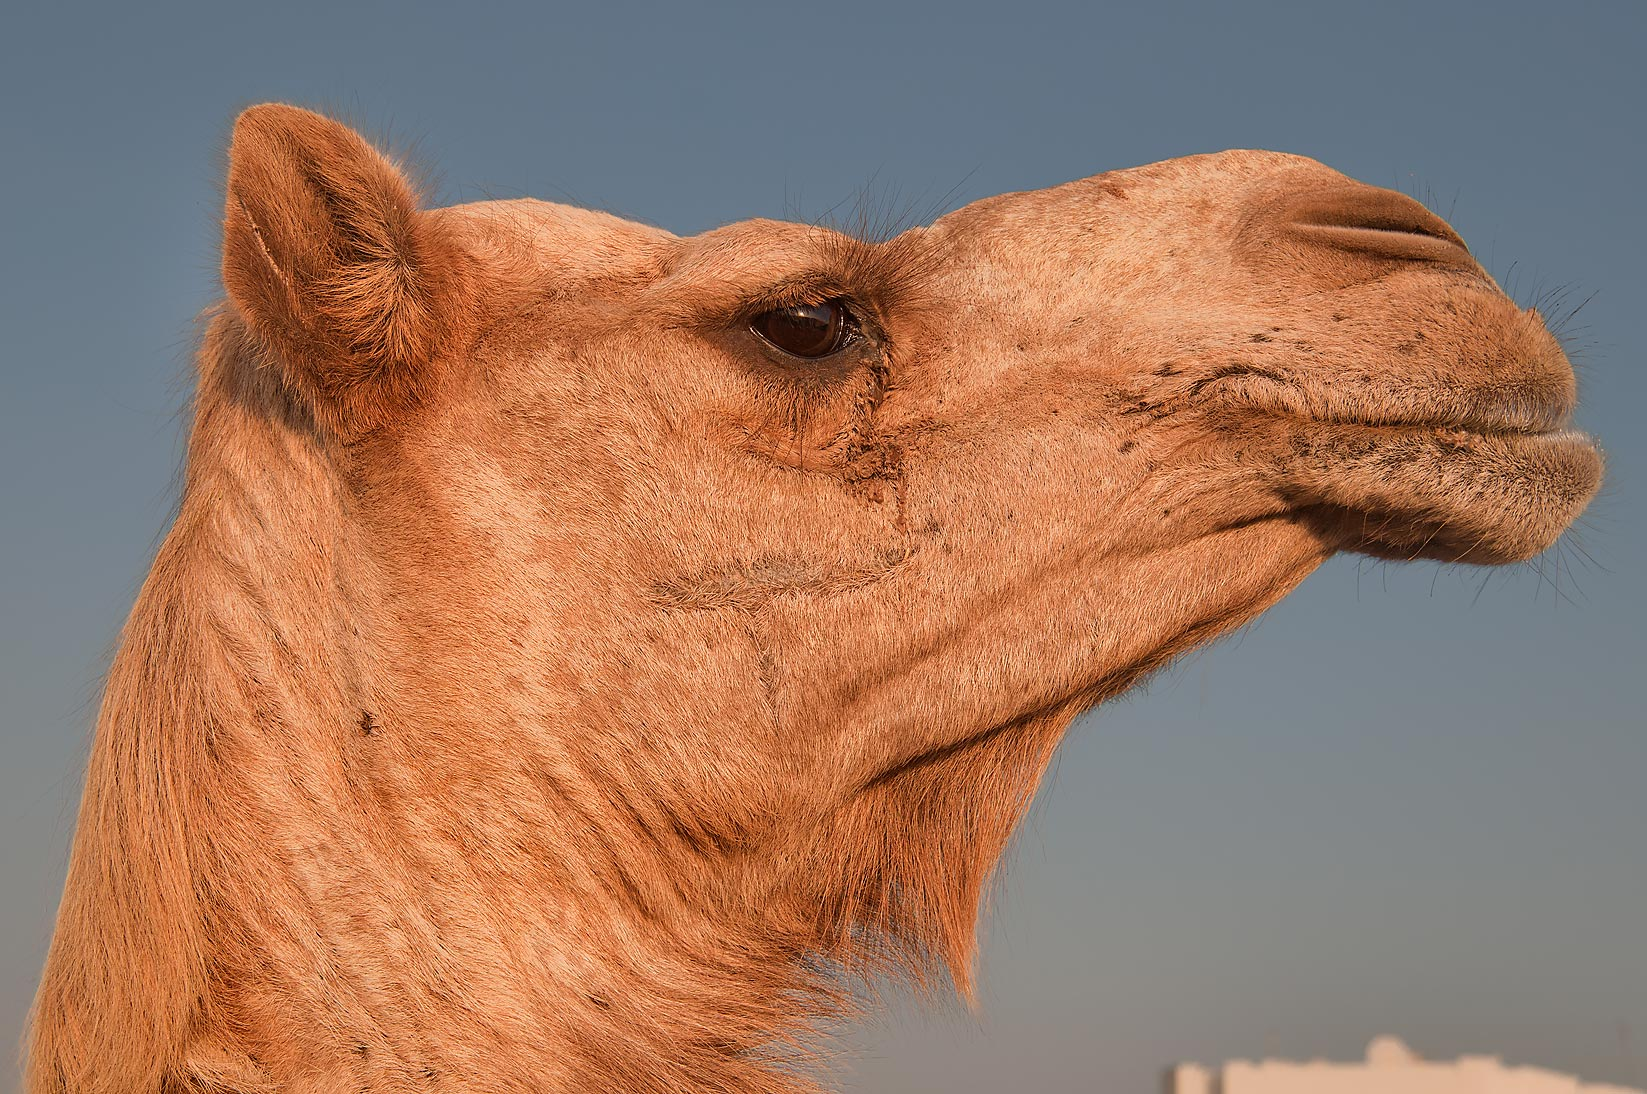 Camel's head at sunrise in Camel Market (Souq). Doha, Qatar